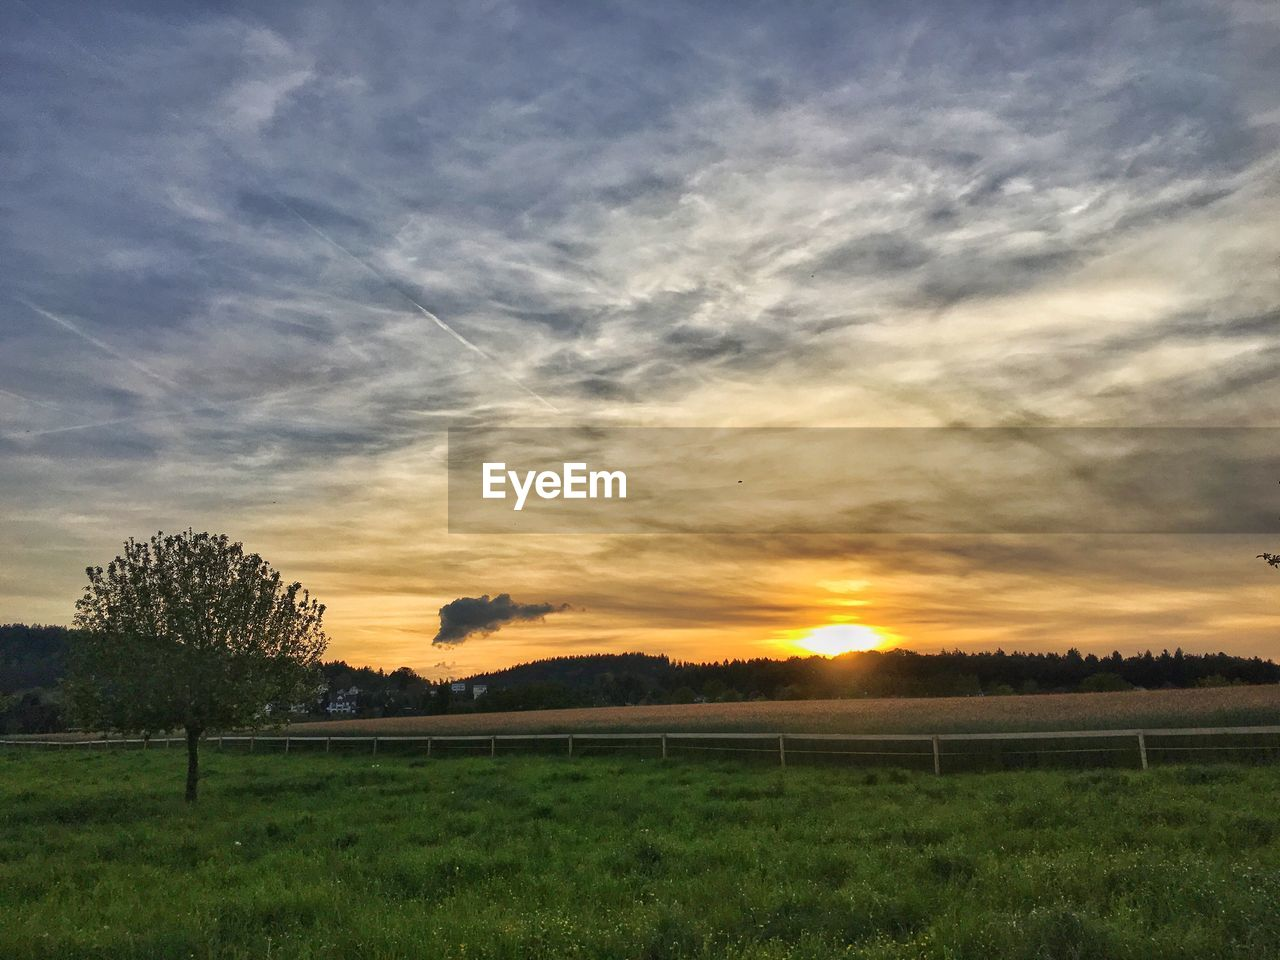 sunset, field, beauty in nature, scenics, nature, grass, tranquil scene, landscape, tranquility, no people, tree, sky, sun, outdoors, cloud - sky, rural scene, day